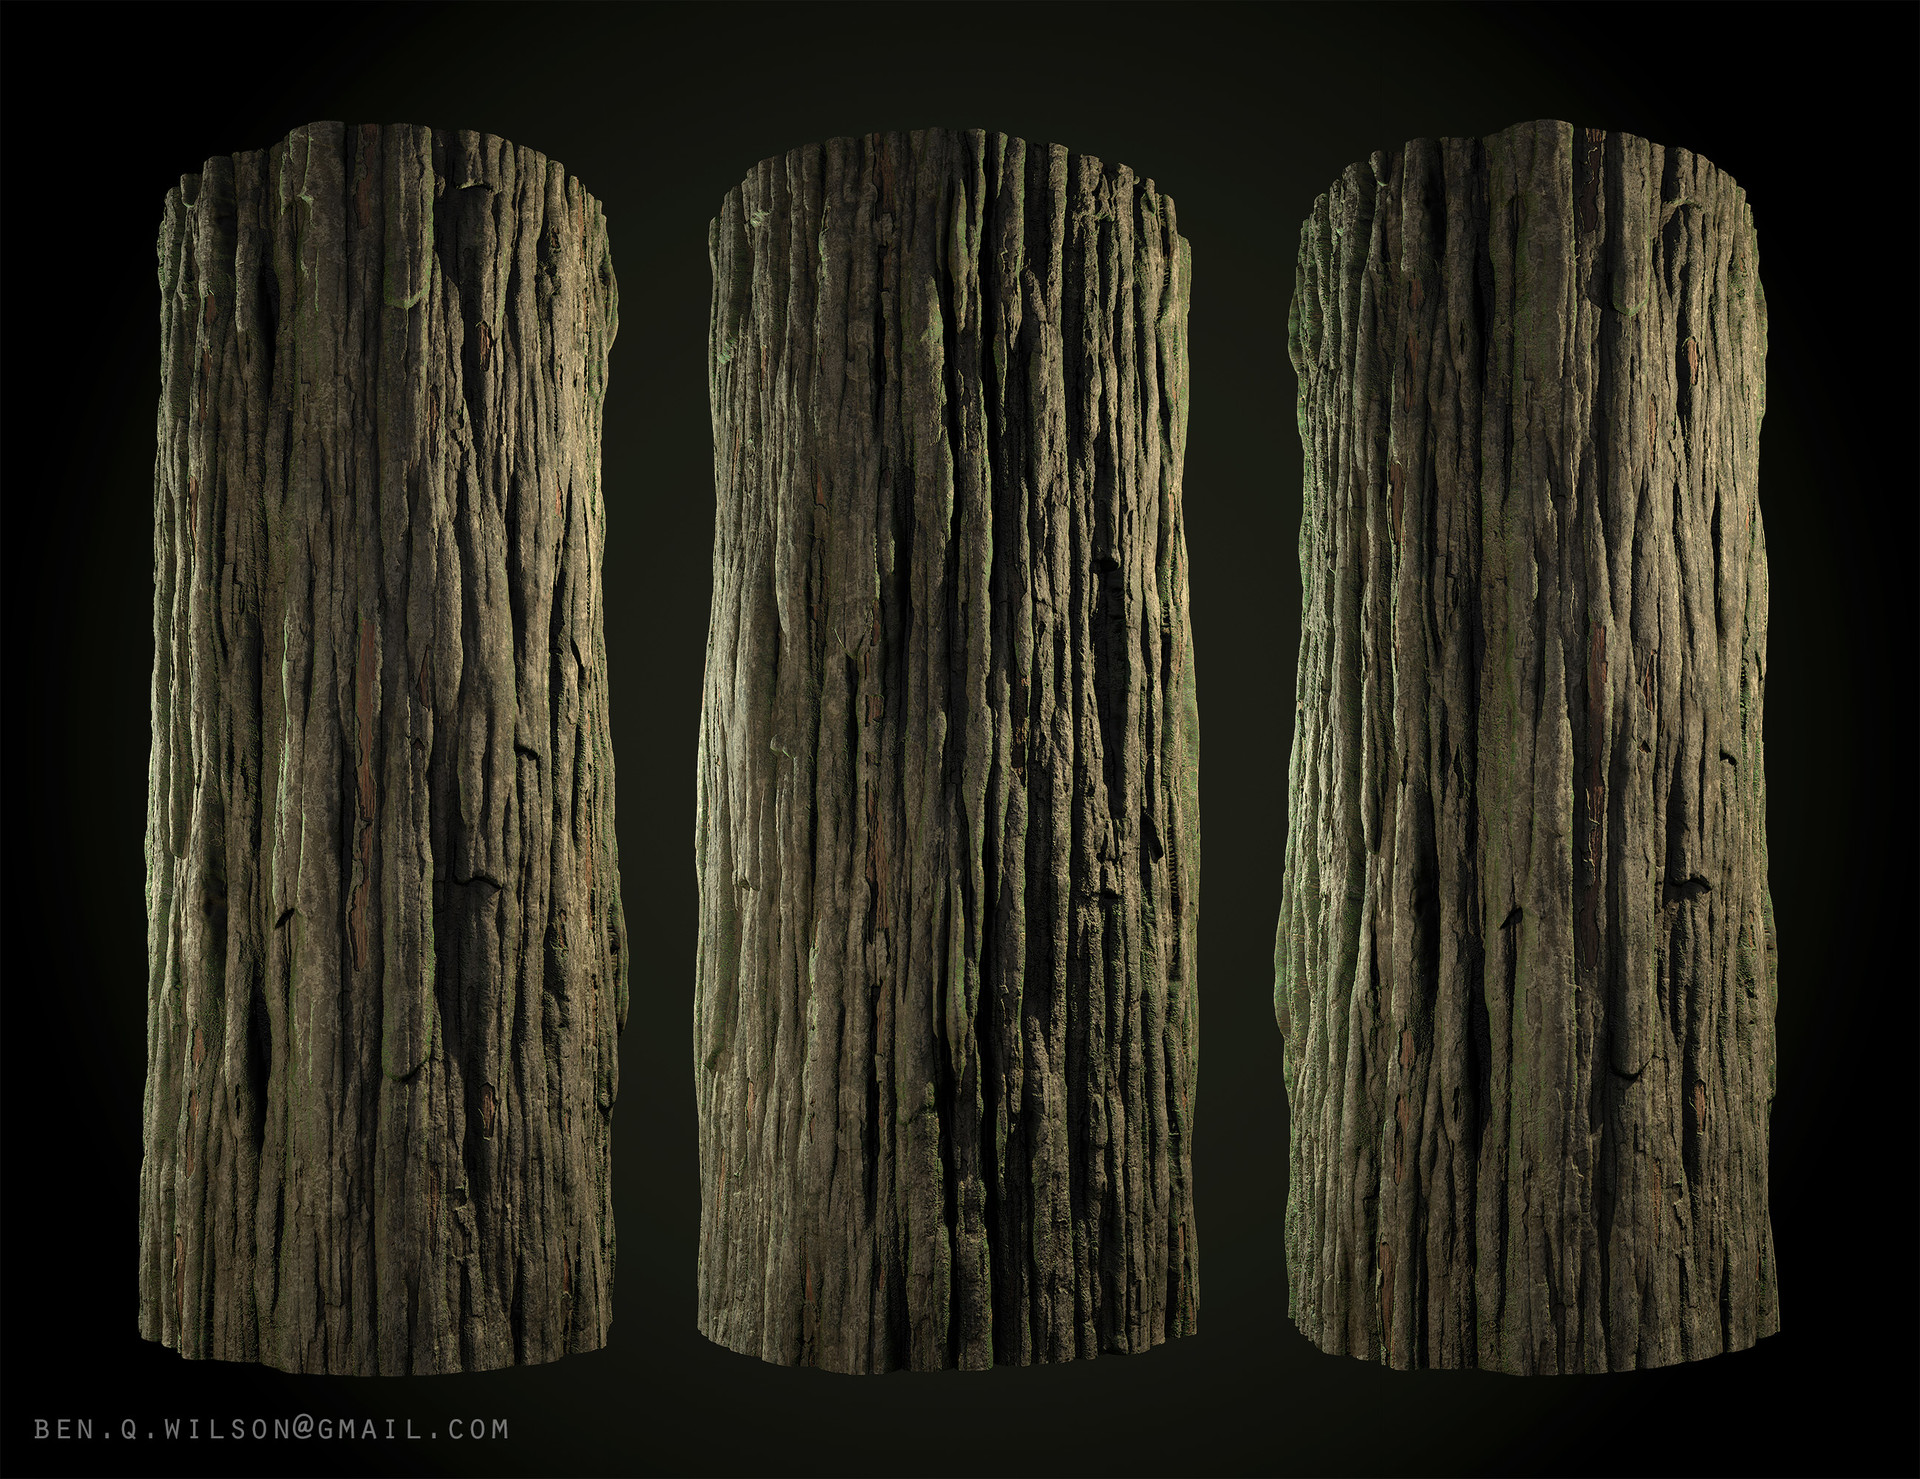 ArtStation - Redwood Tree Bark, Ben Wilson